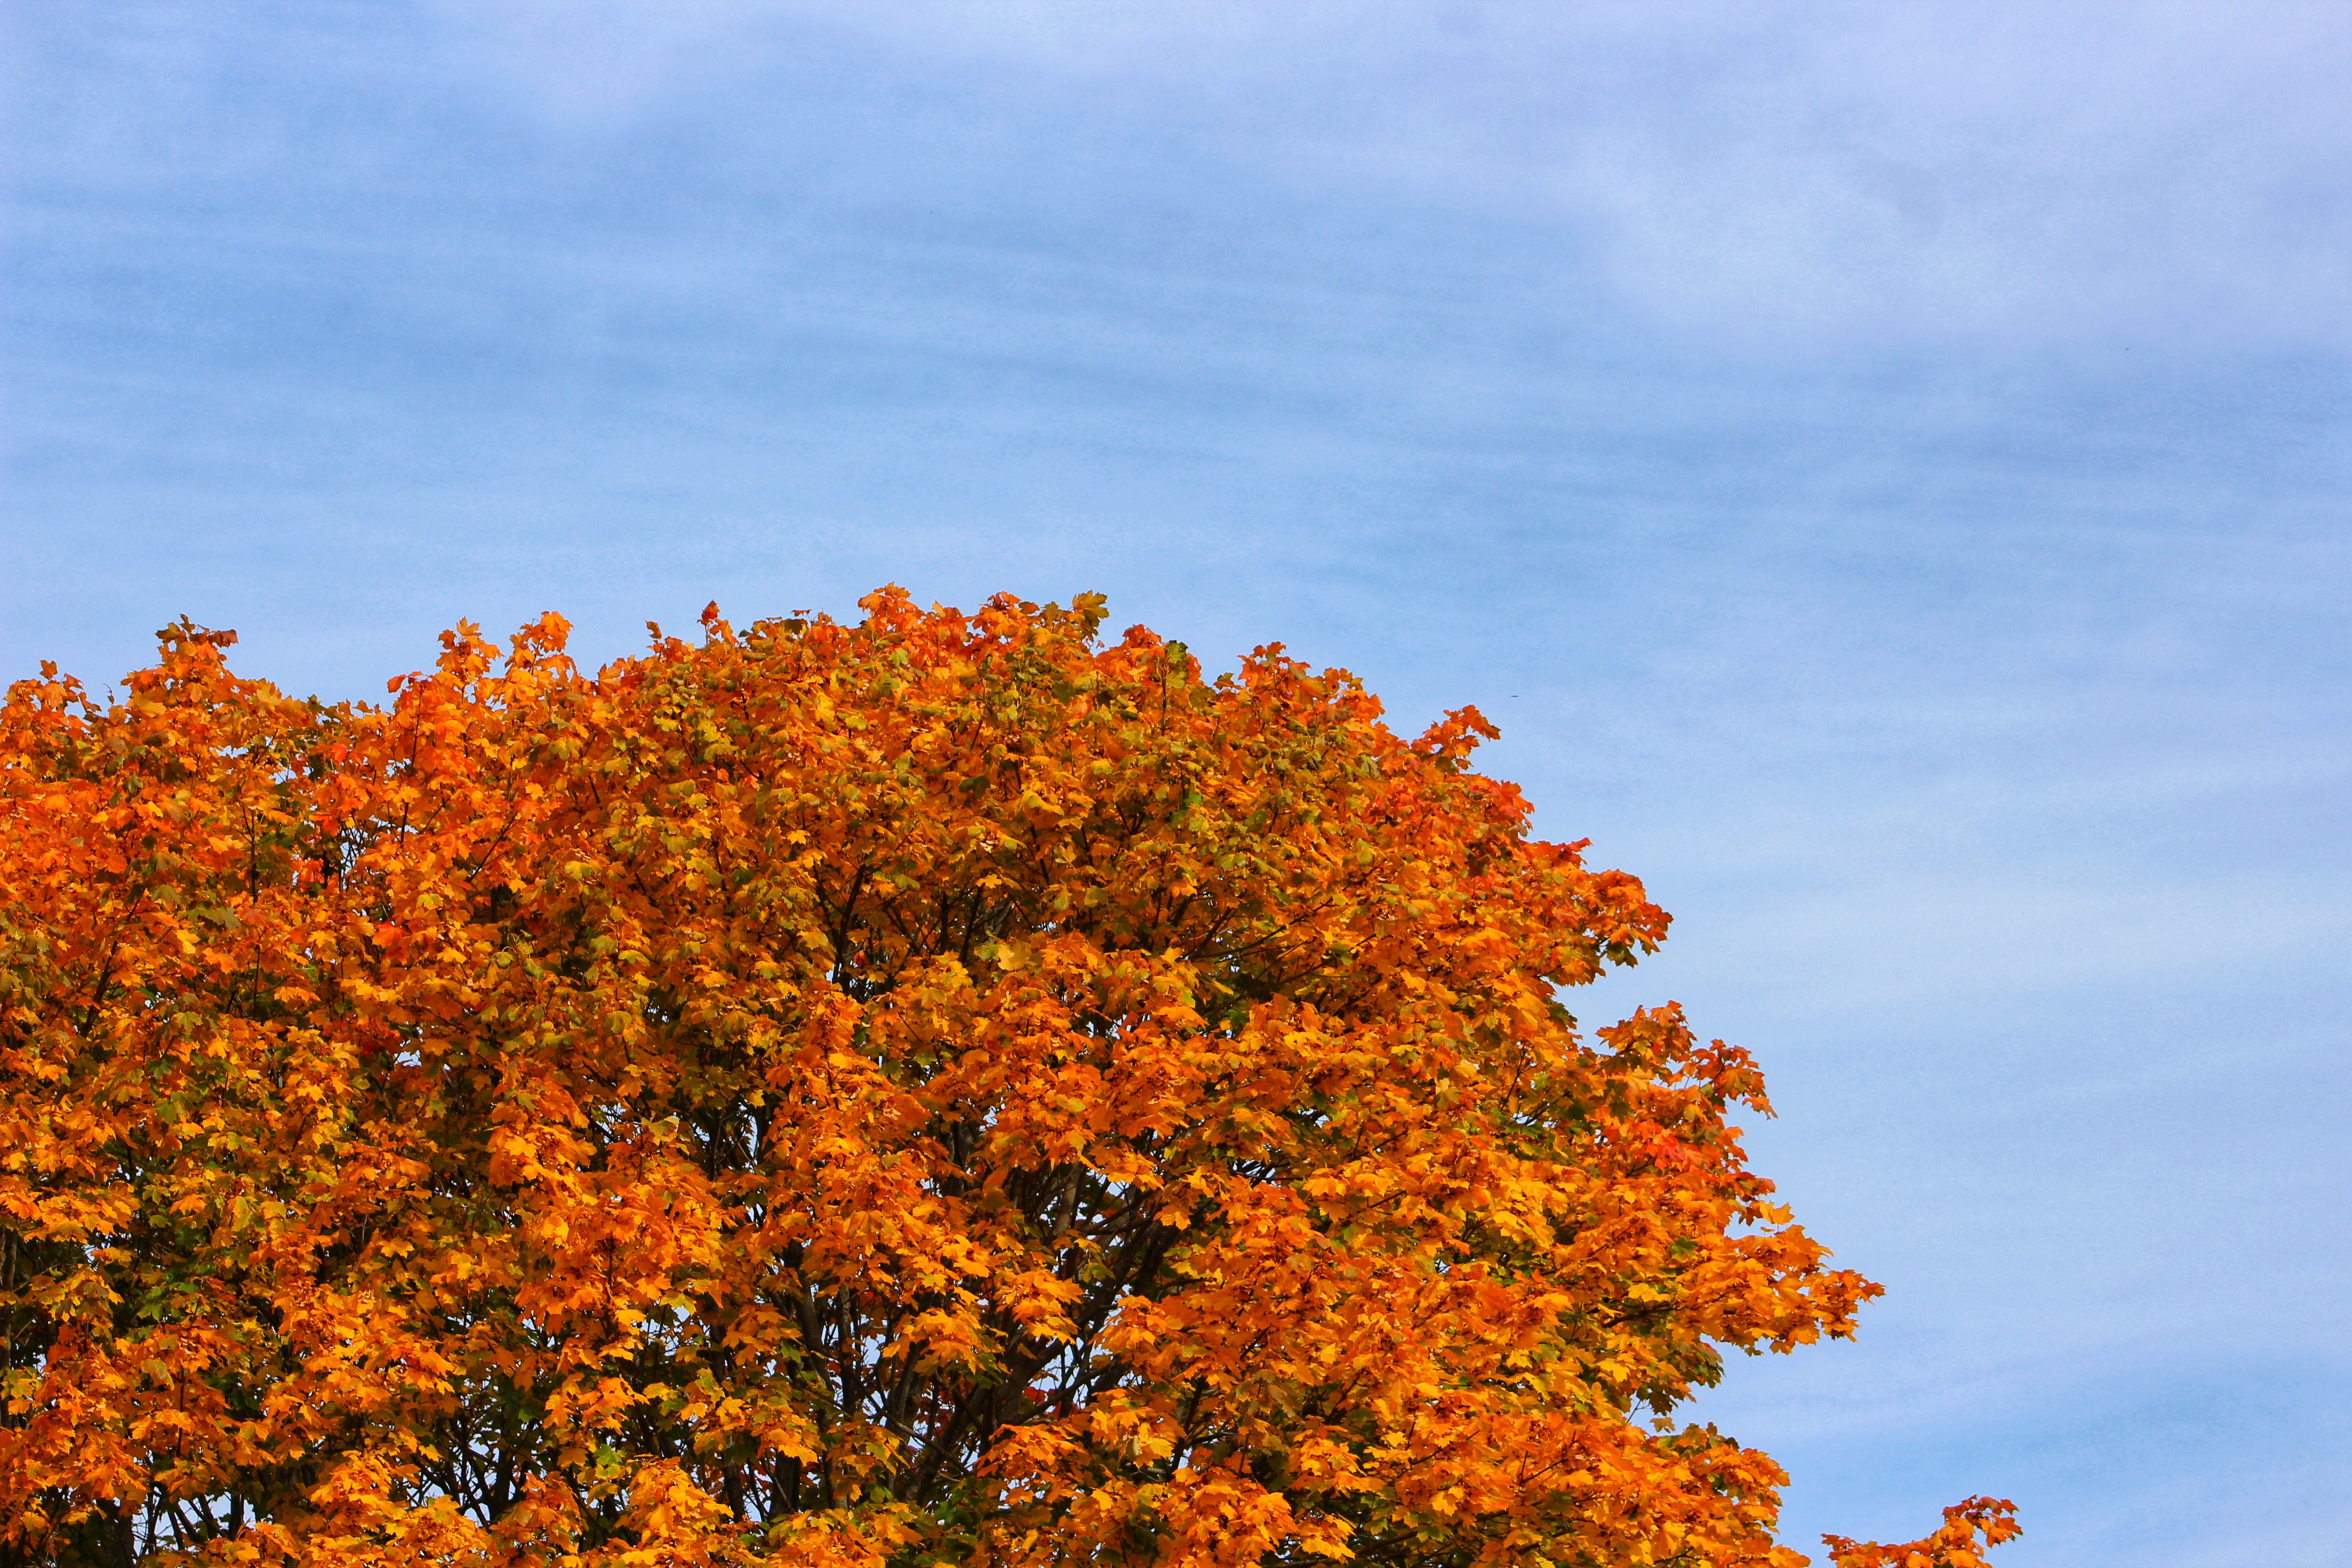 Autumn Leaves in Ontario, Park, Sky, Tree, Ontario, HQ Photo